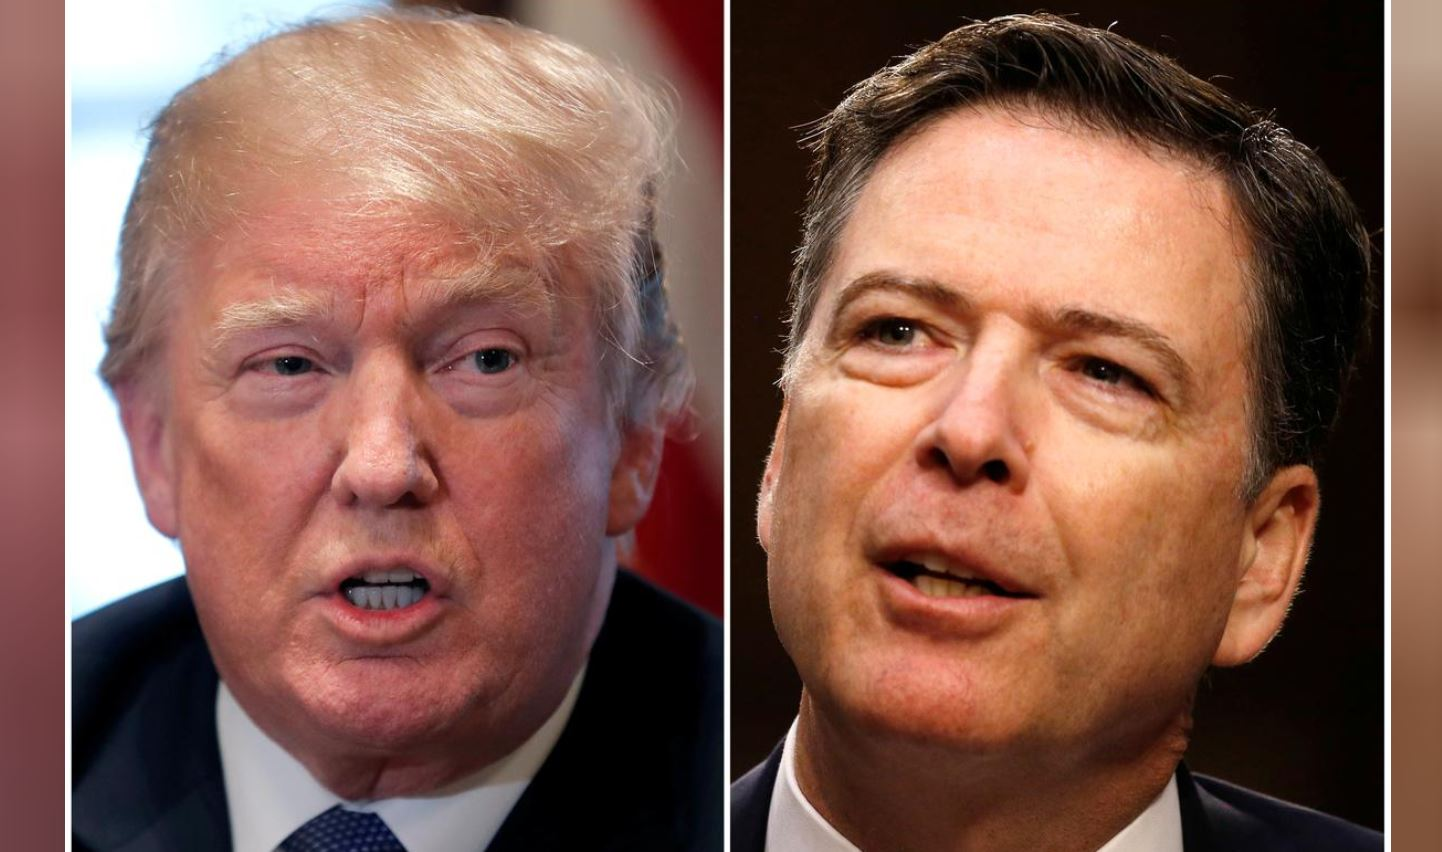 TV show on Trump-Comey clash now likely to air before November election